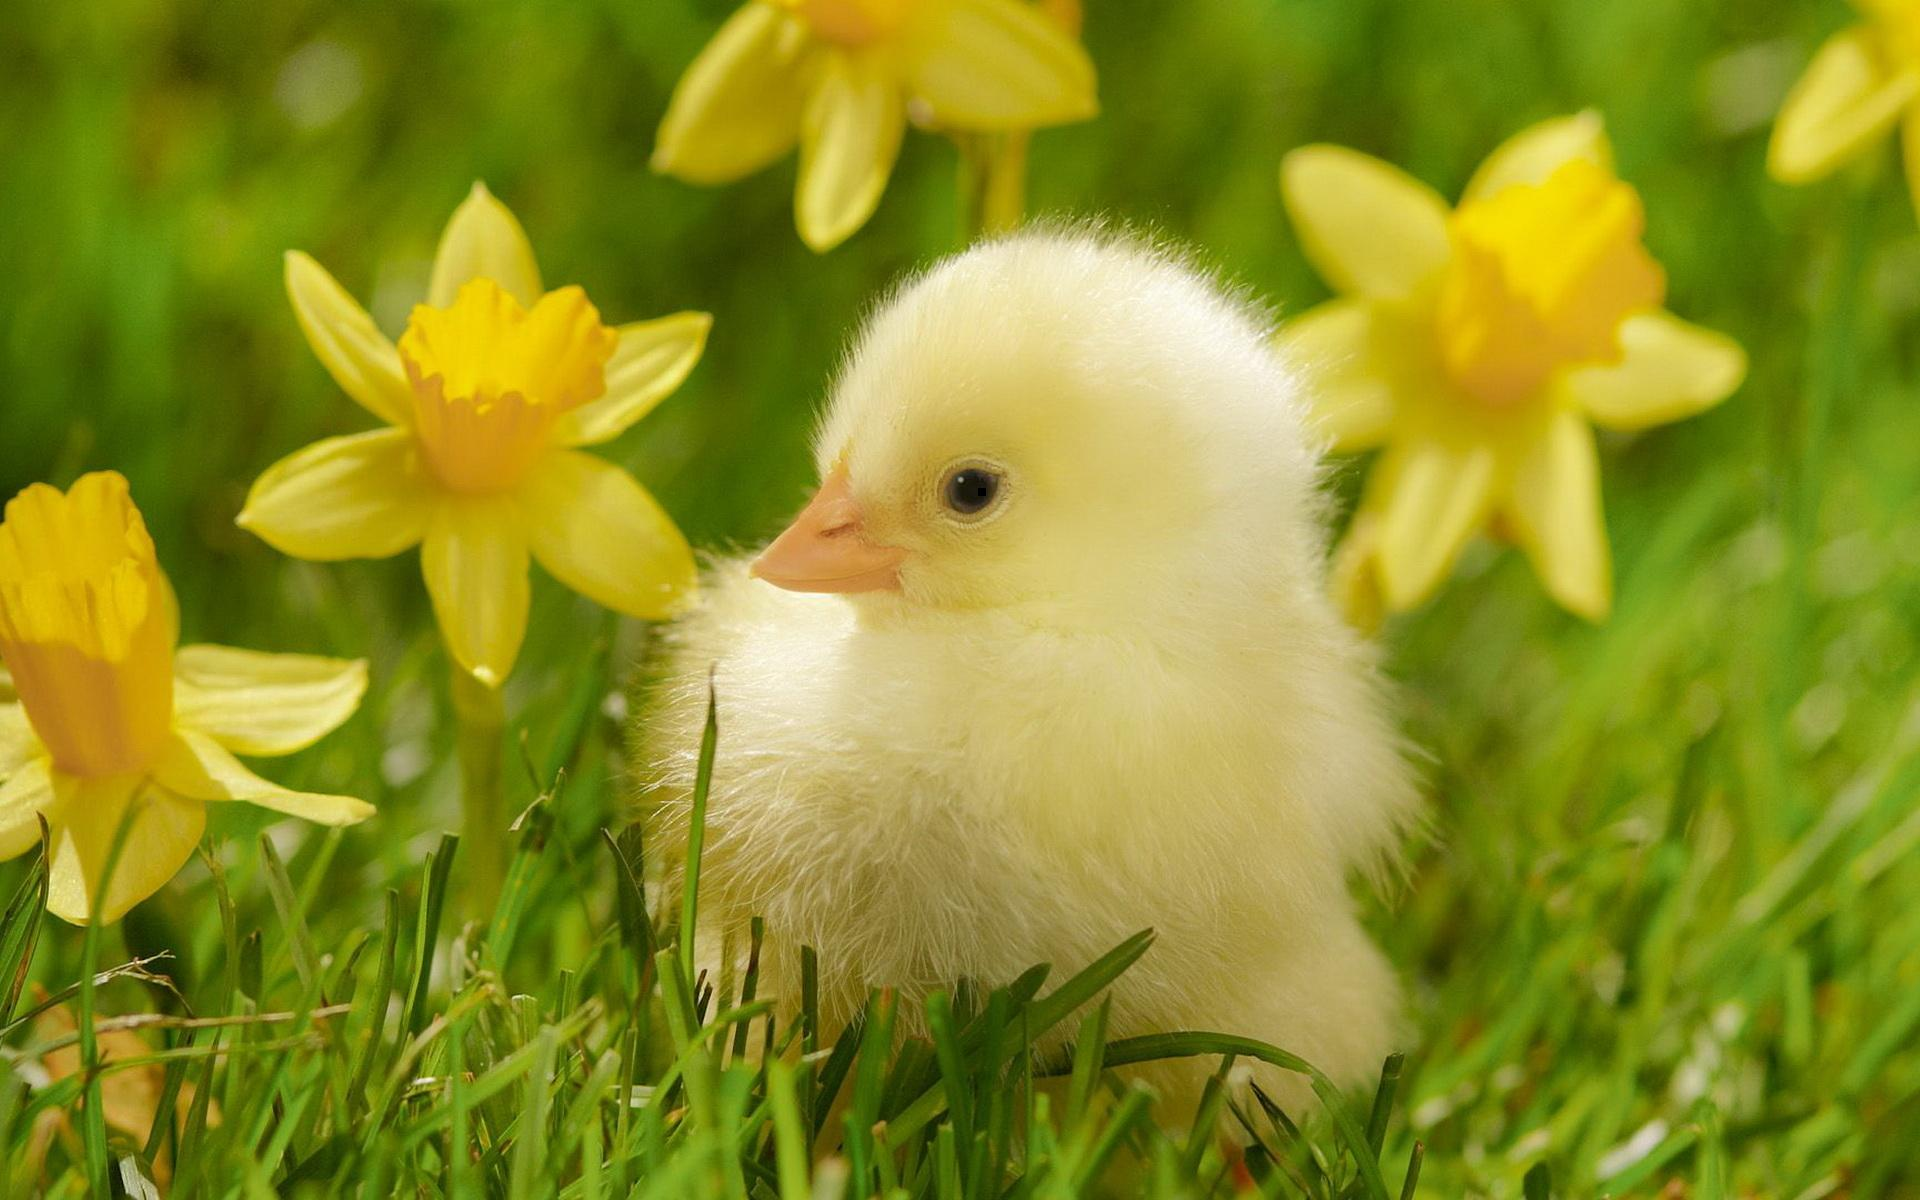 Adorable Duckling Wallpaper